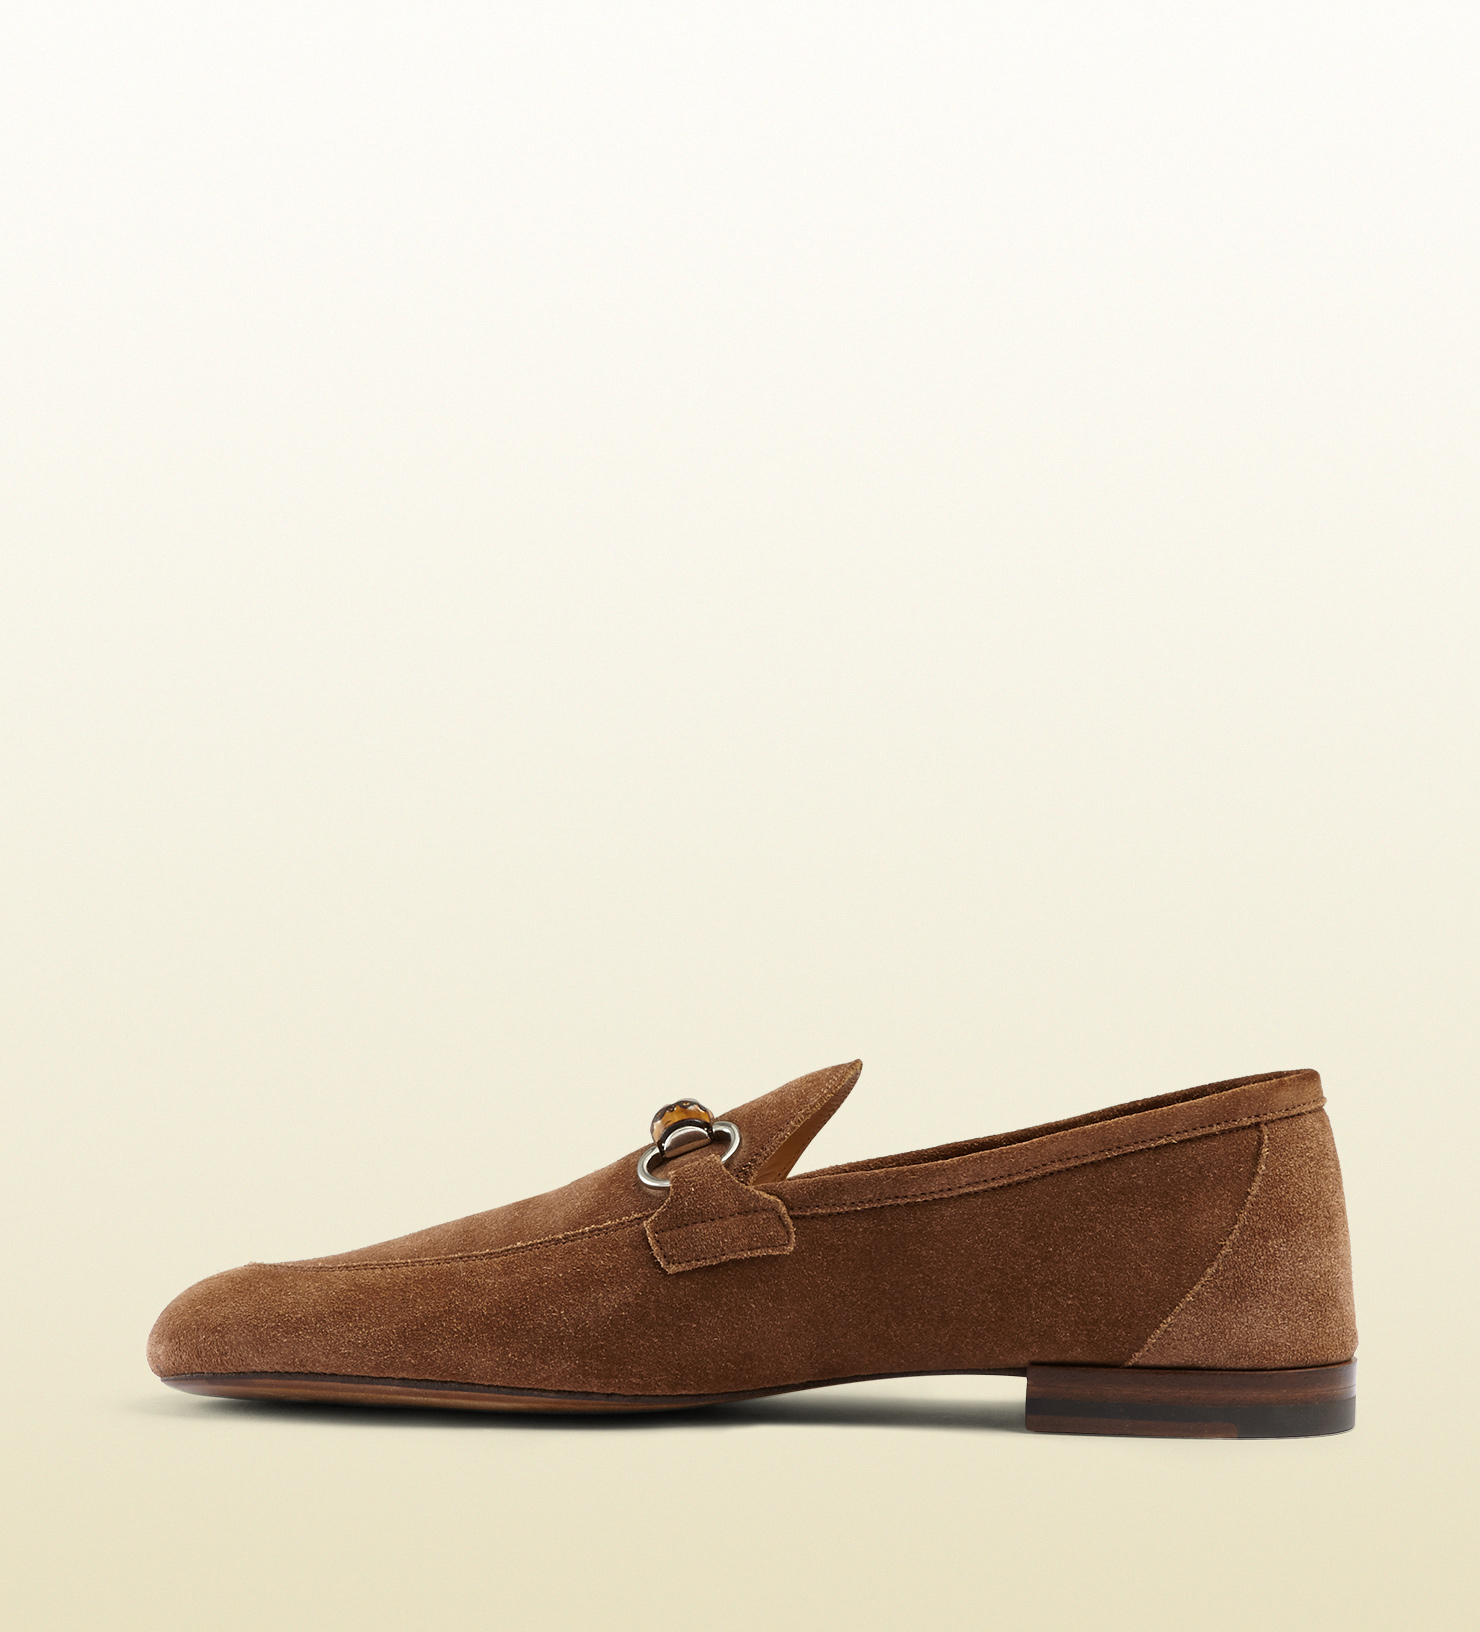 1798a9c66f7 Gucci Suede Bamboo Horsebit Loafer in Brown for Men - Lyst